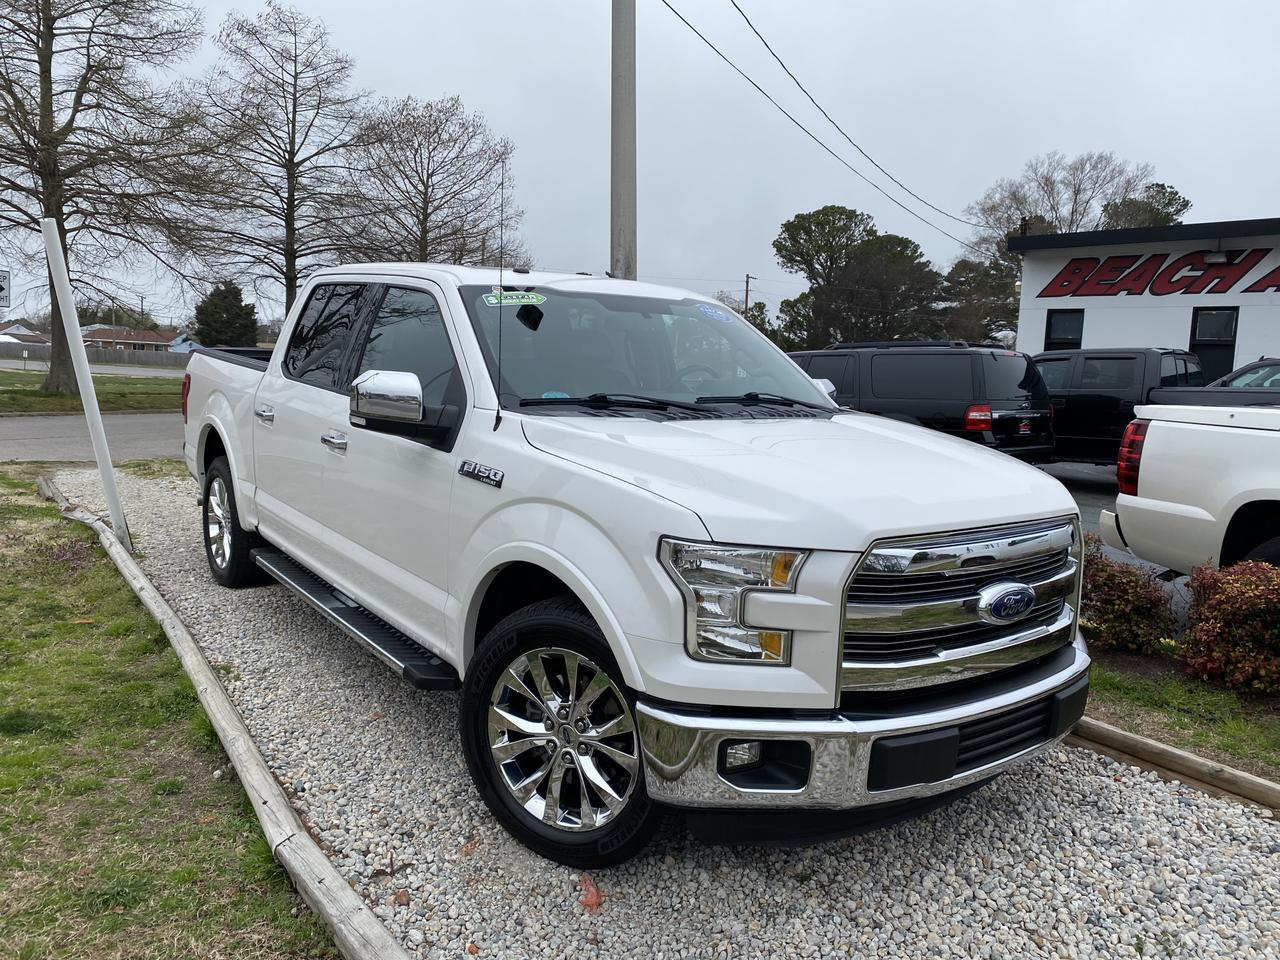 2016 FORD F-150 LARIAT SUPERCREW, WARRANTY, LEATHER, NAV, HEATED/COOLED SEATS, SUNROOF, 1 OWNER! Norfolk VA